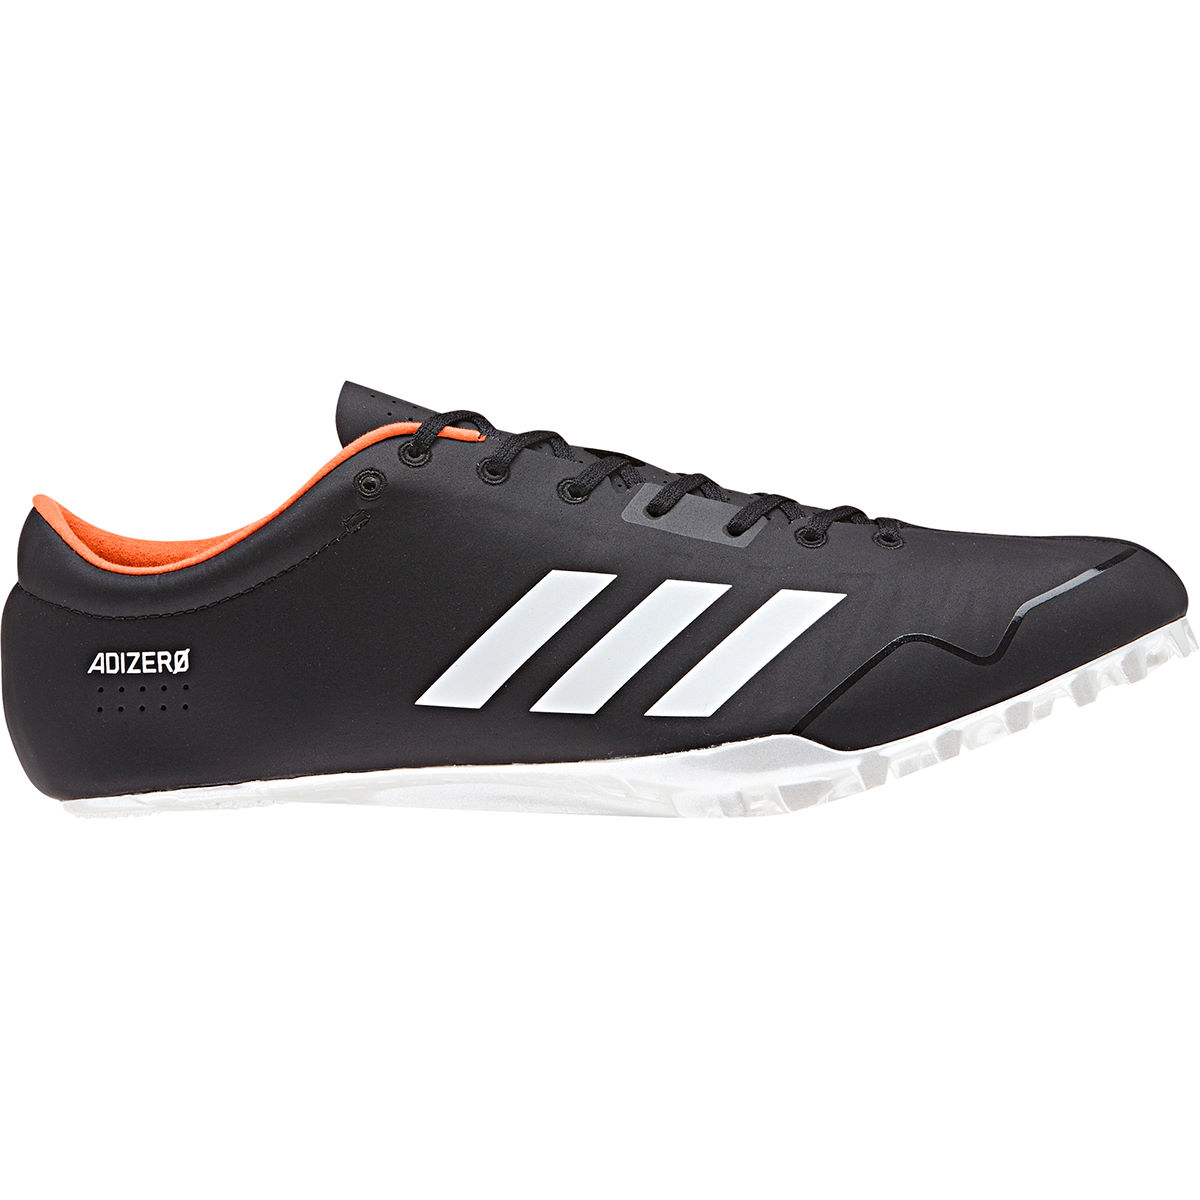 Adidas Adizero Prime SP Shoes - Zapatillas de atletismo